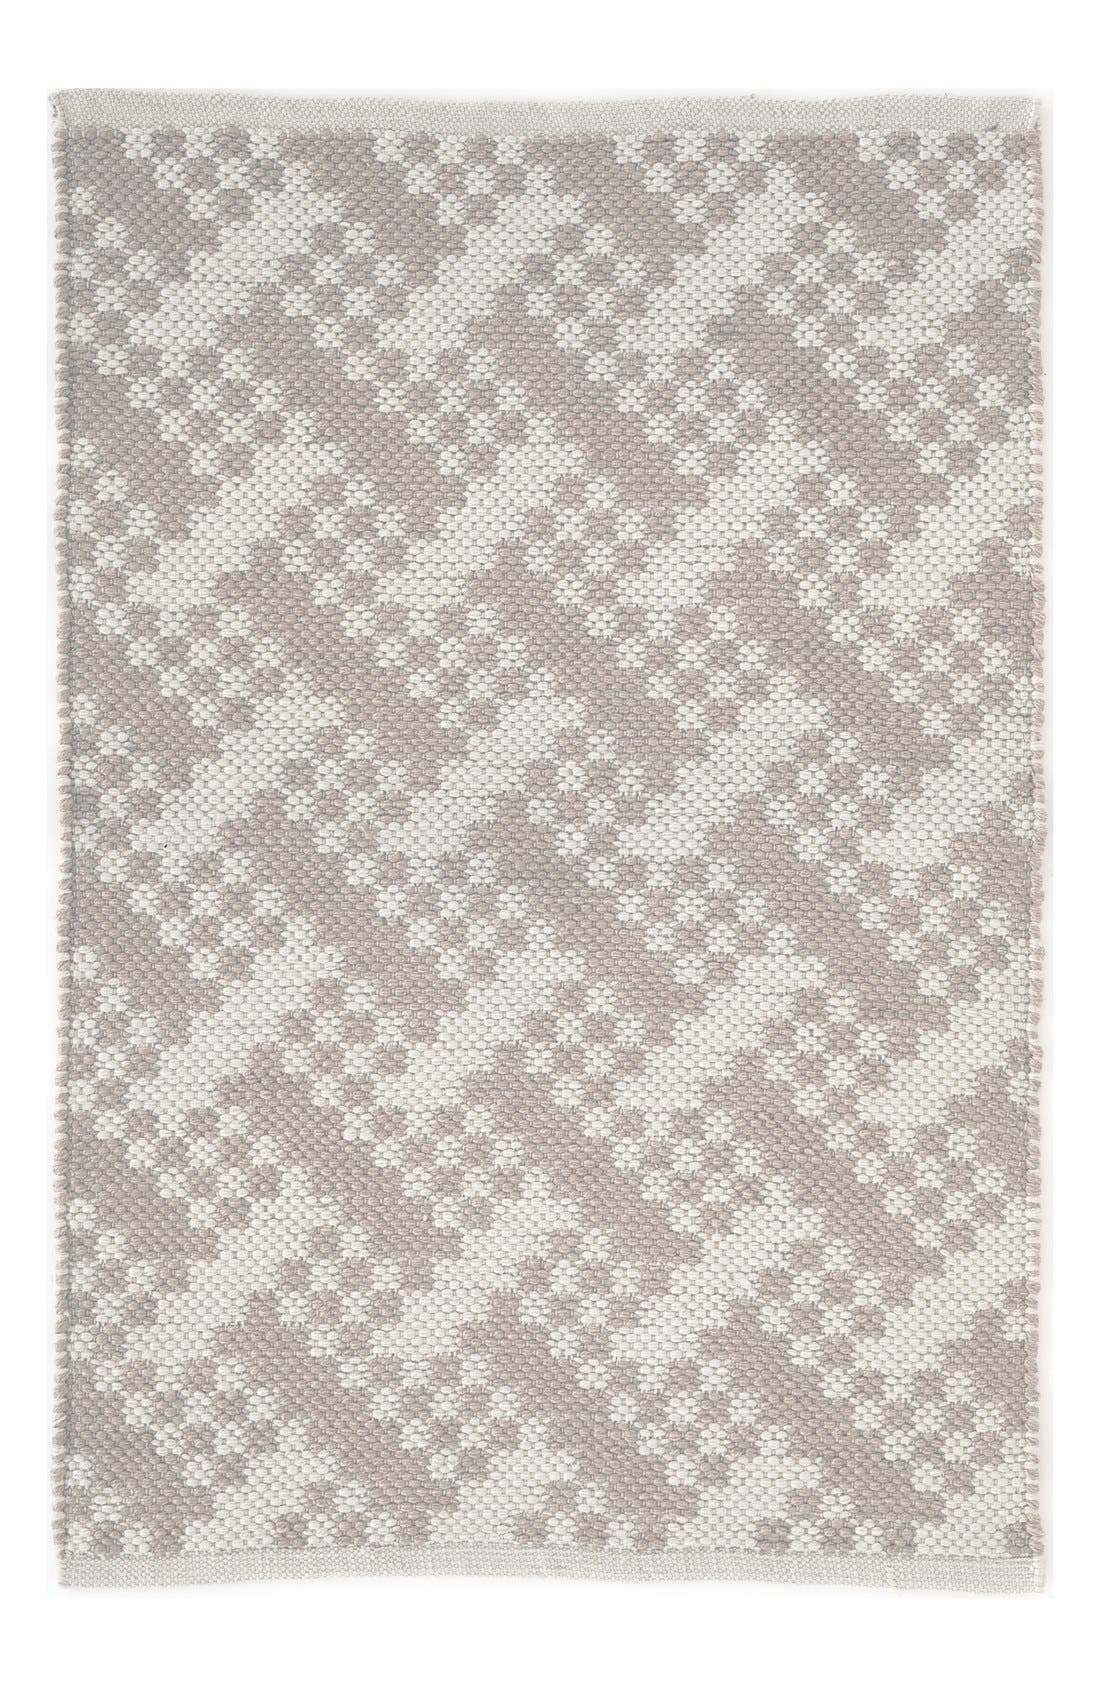 'Hudson' Indoor/Outdoor Rug,                             Main thumbnail 1, color,                             Sand